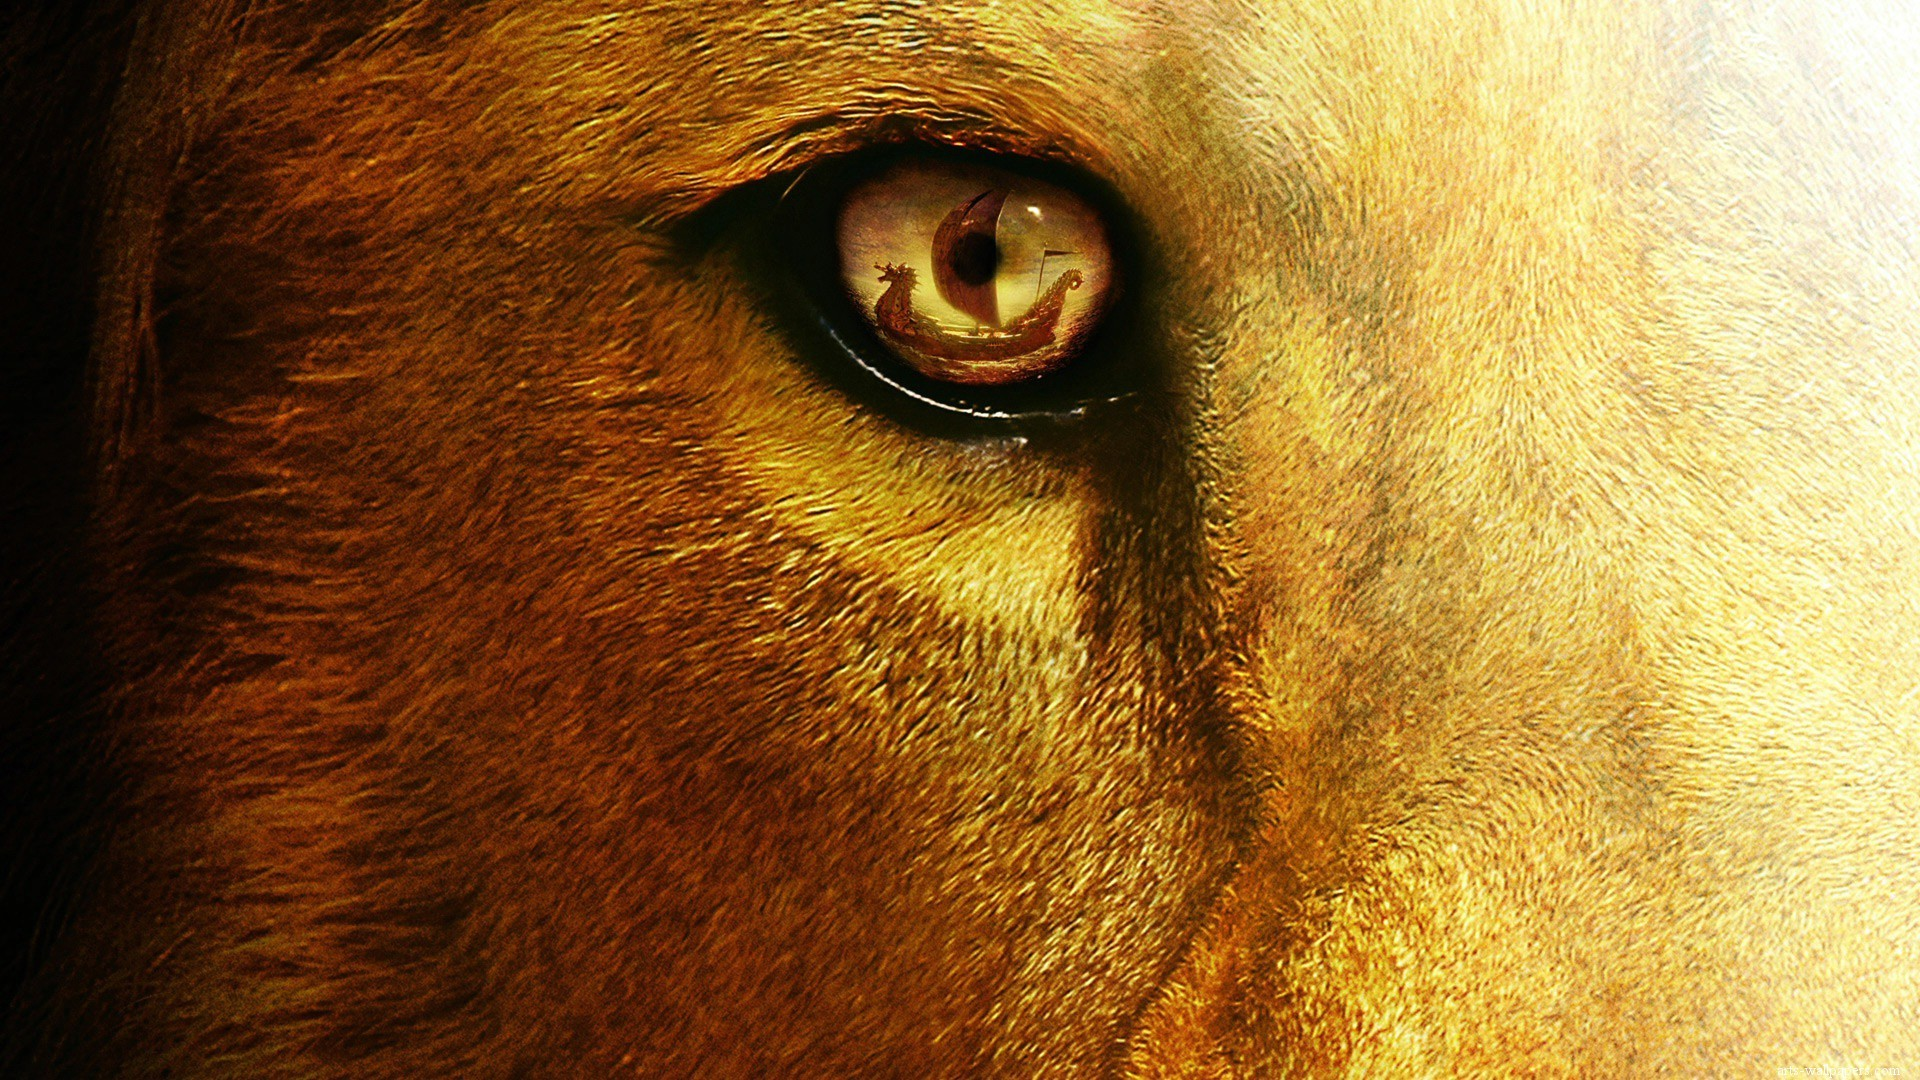 Res: 1920x1080, Aslan Narnia Desktop Wallpaper. Click on the image to view full size and  download.